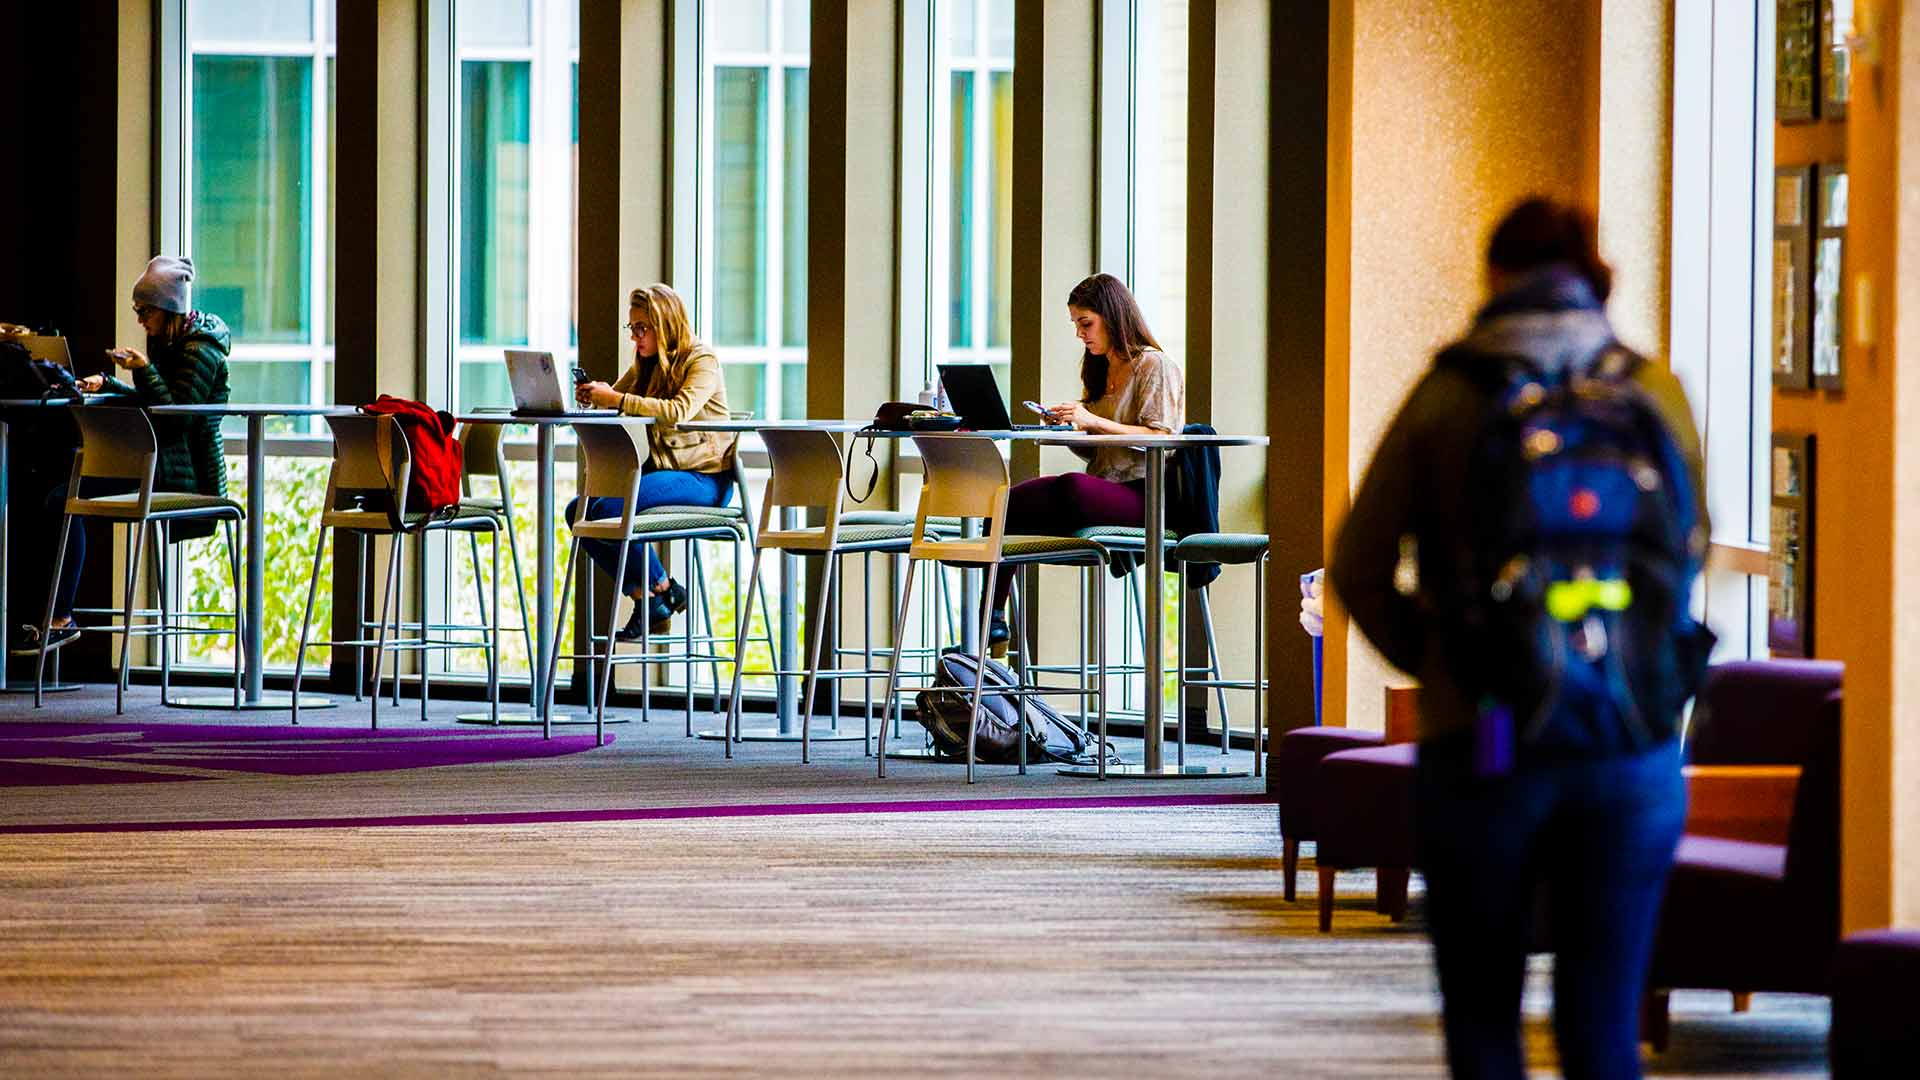 Students studying between classes in the skyway.